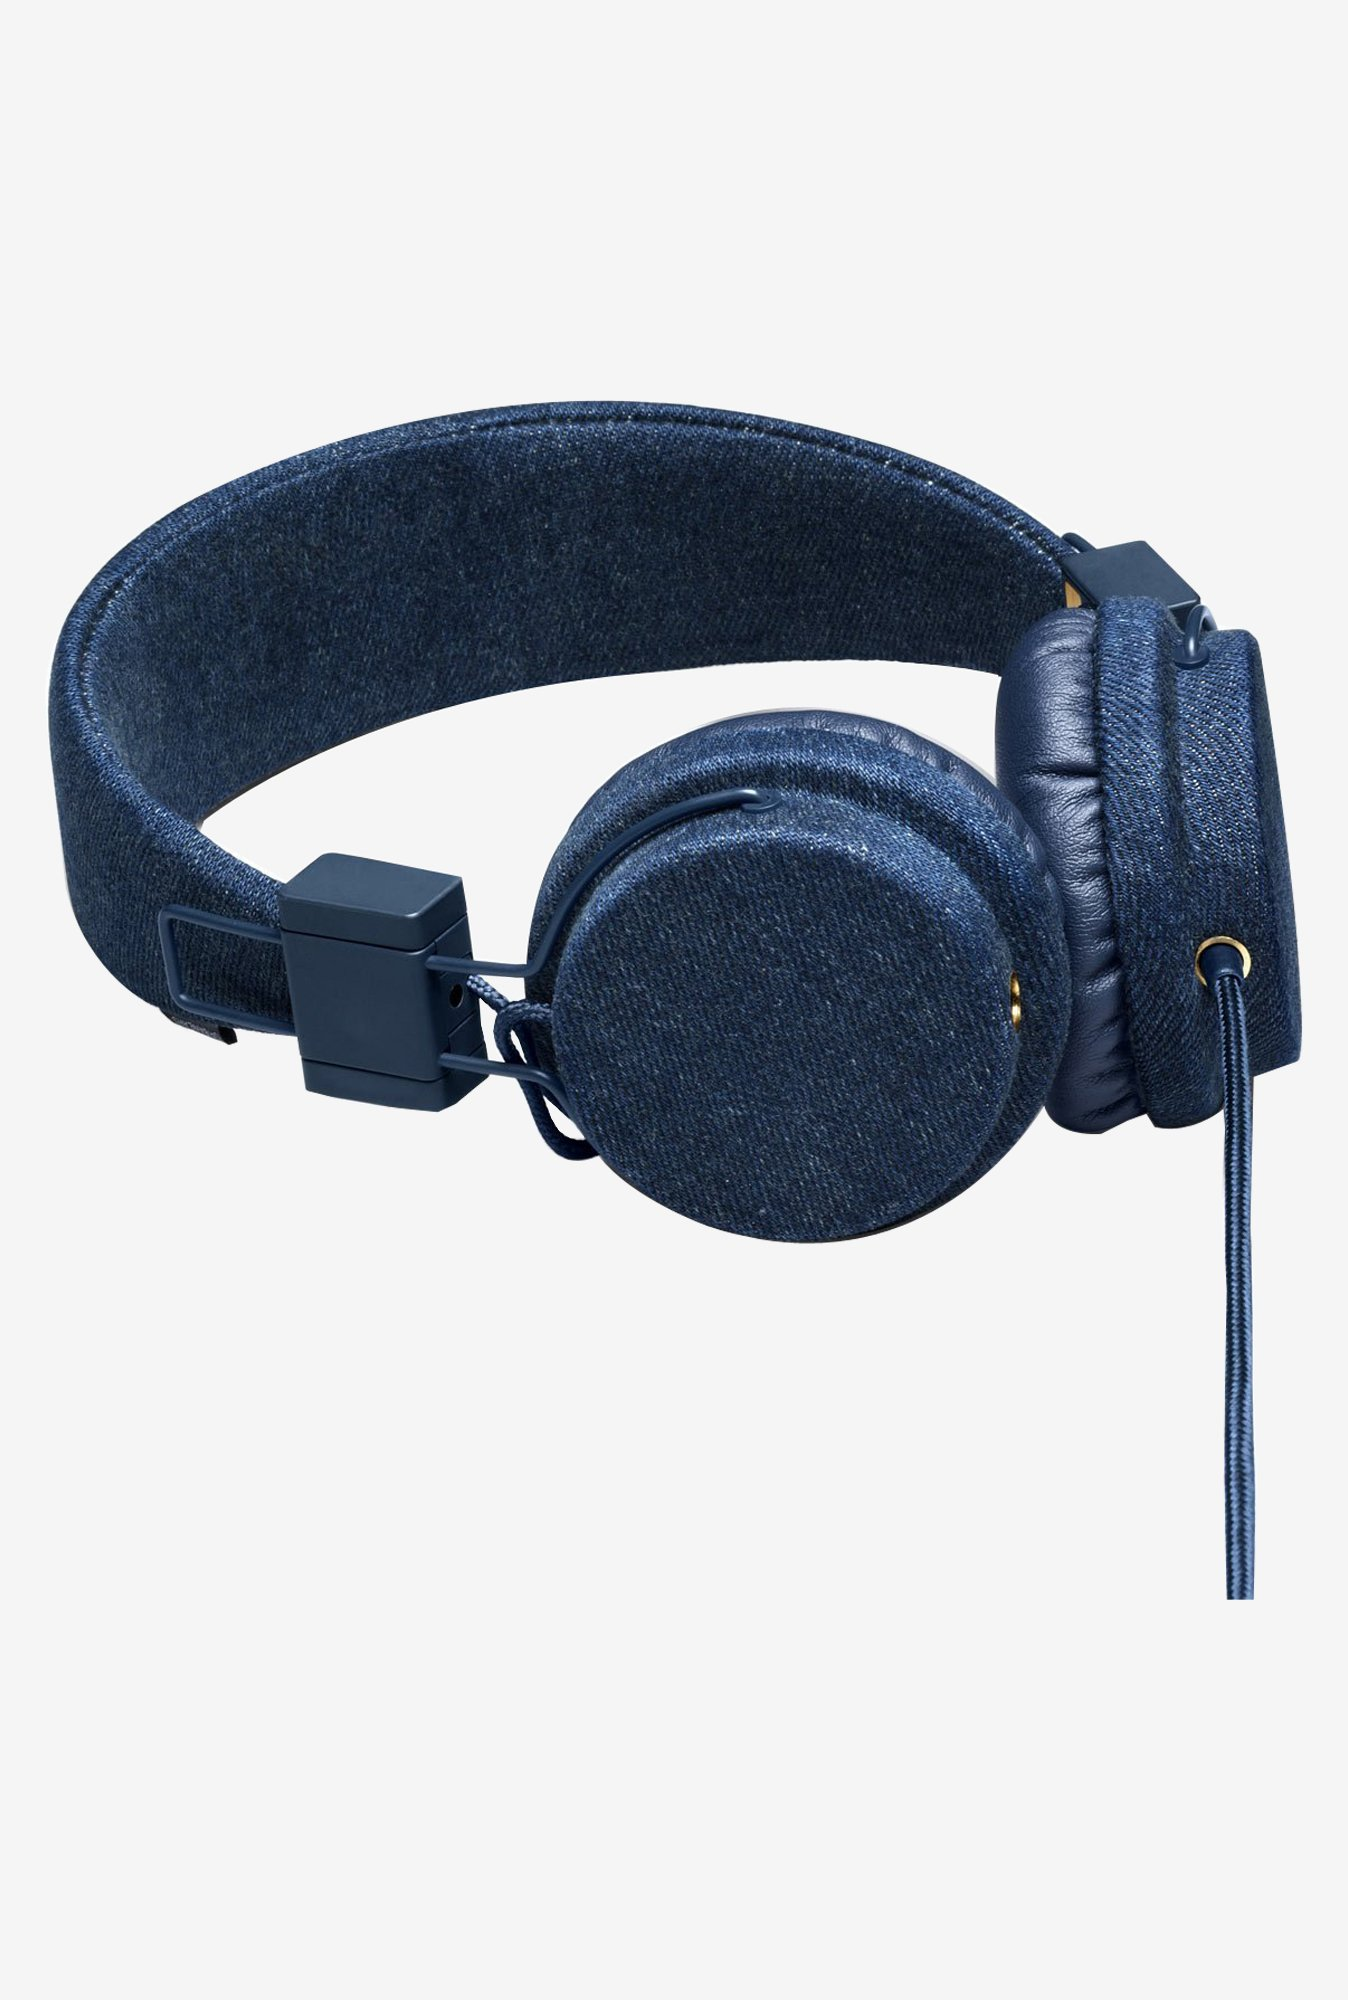 Urbanears 4090626 Plattan On The Ear Headphone (Denim)